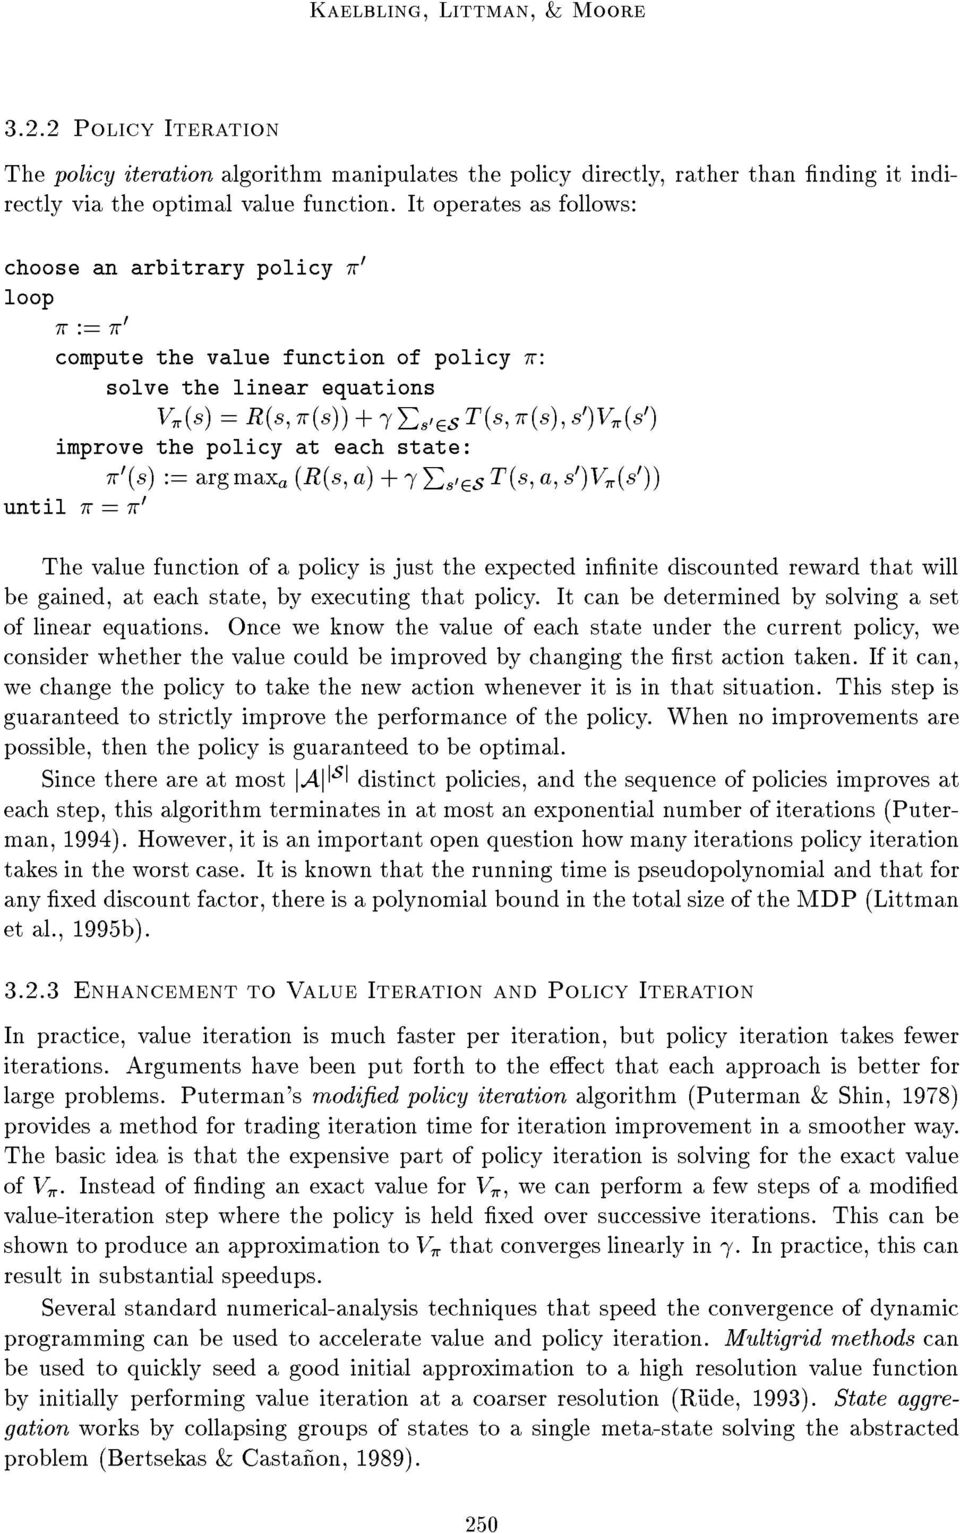 improve the policy at each state: ç 0 èsè := arg max a èrès; aè+æ P s 0 2S T ès; a; s 0 èv ç ès 0 èè until ç = ç 0 The value function of a policy is just the expected inænite discounted reward that